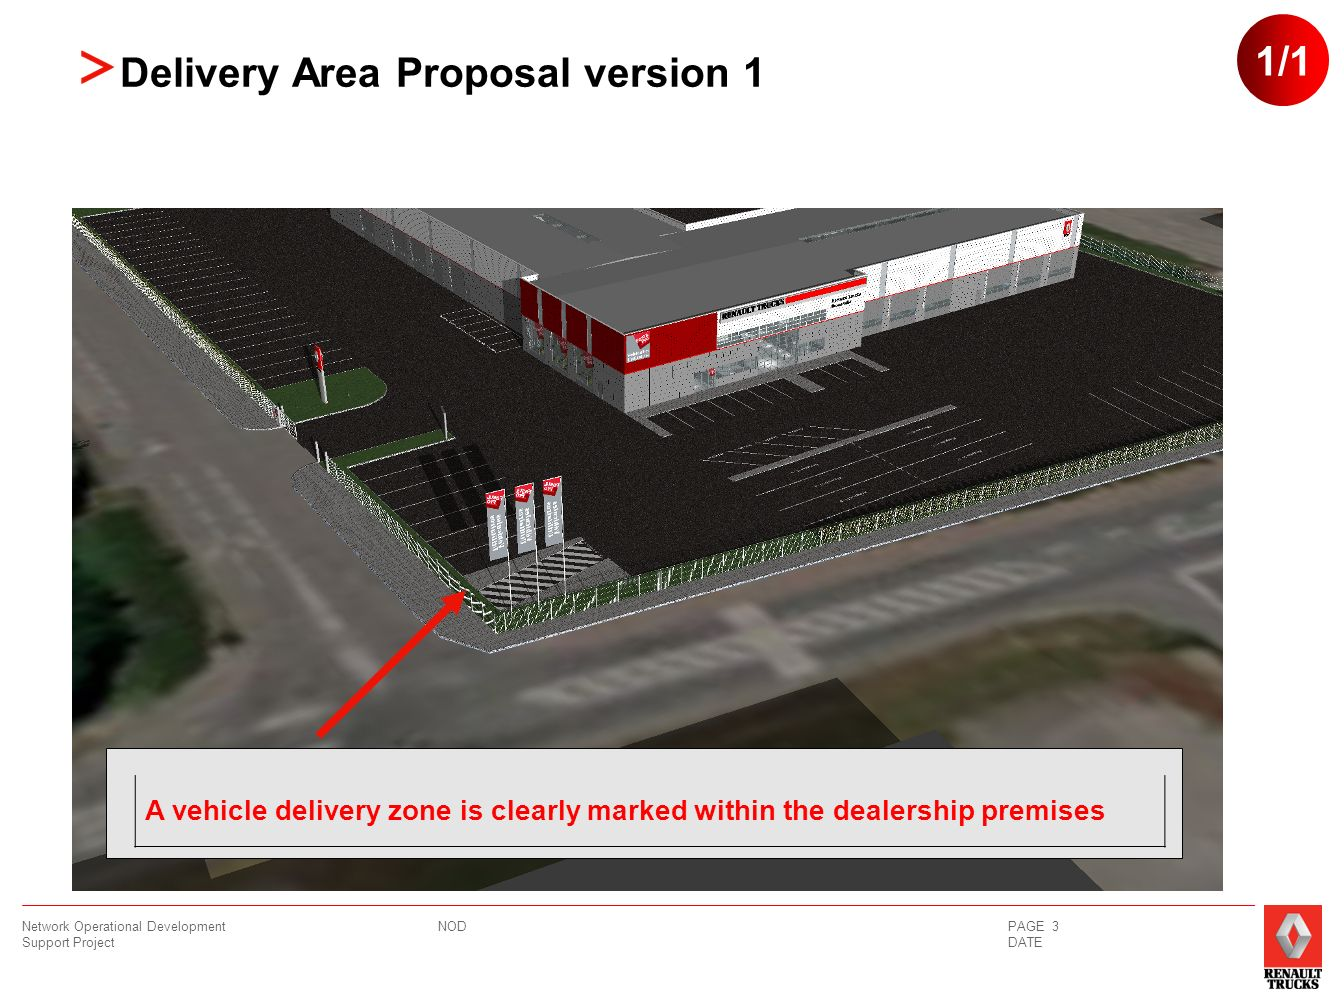 NOD Network Operational Development Support Project PAGE 3 DATE Delivery Area Proposal version 1 A vehicle delivery zone is clearly marked within the dealership premises 1/1